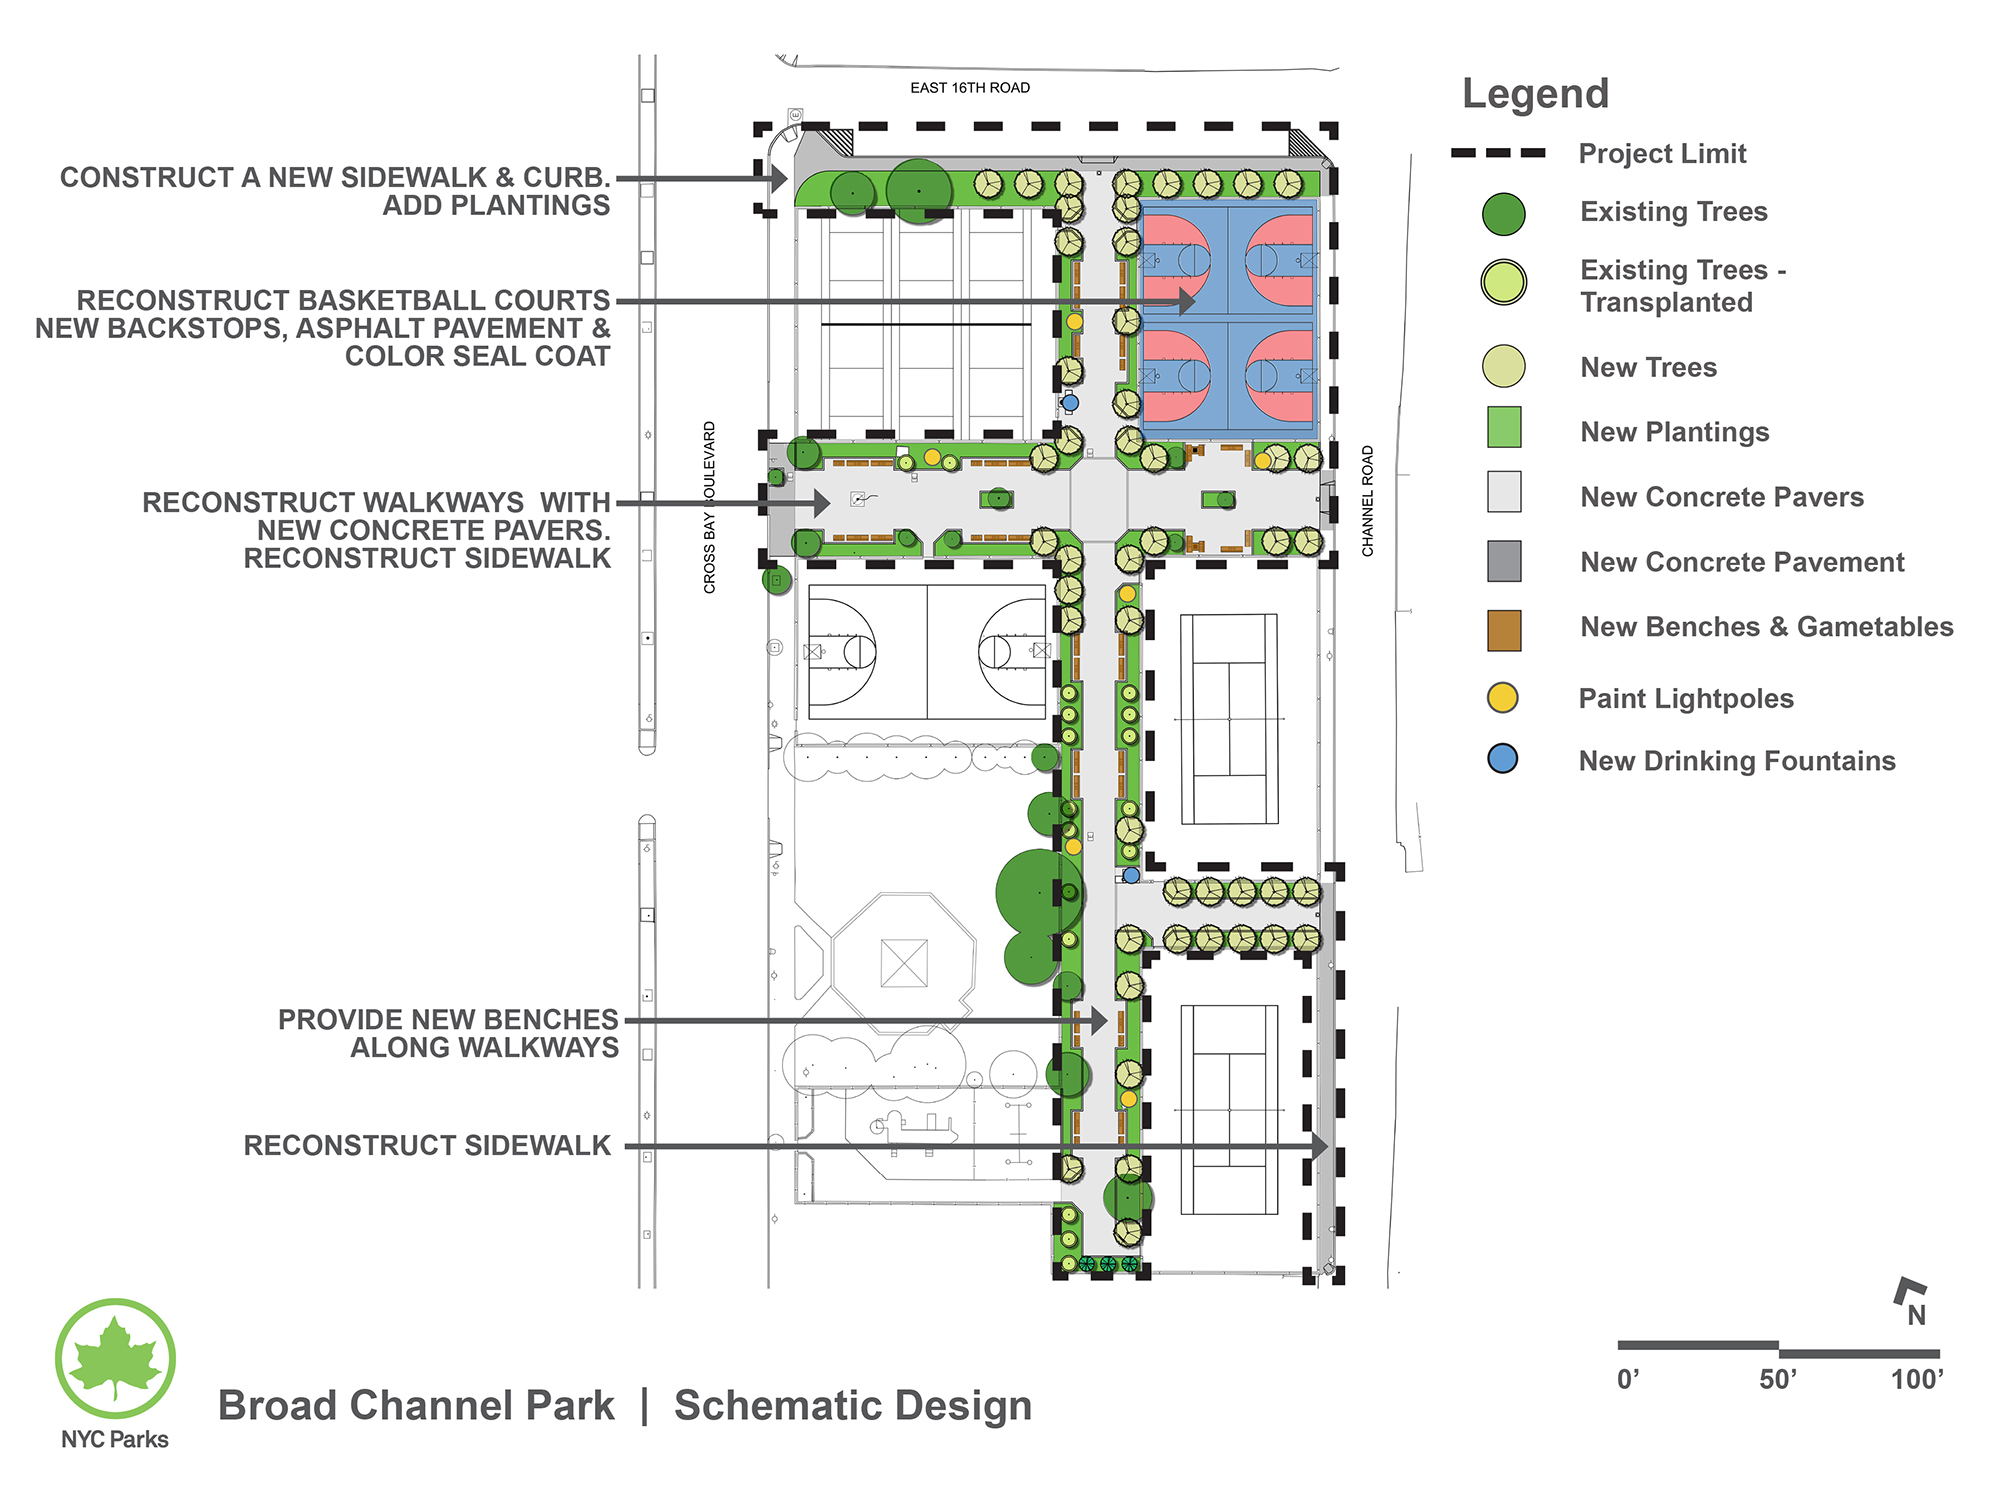 Design of Broad Channel Park Reconstruction